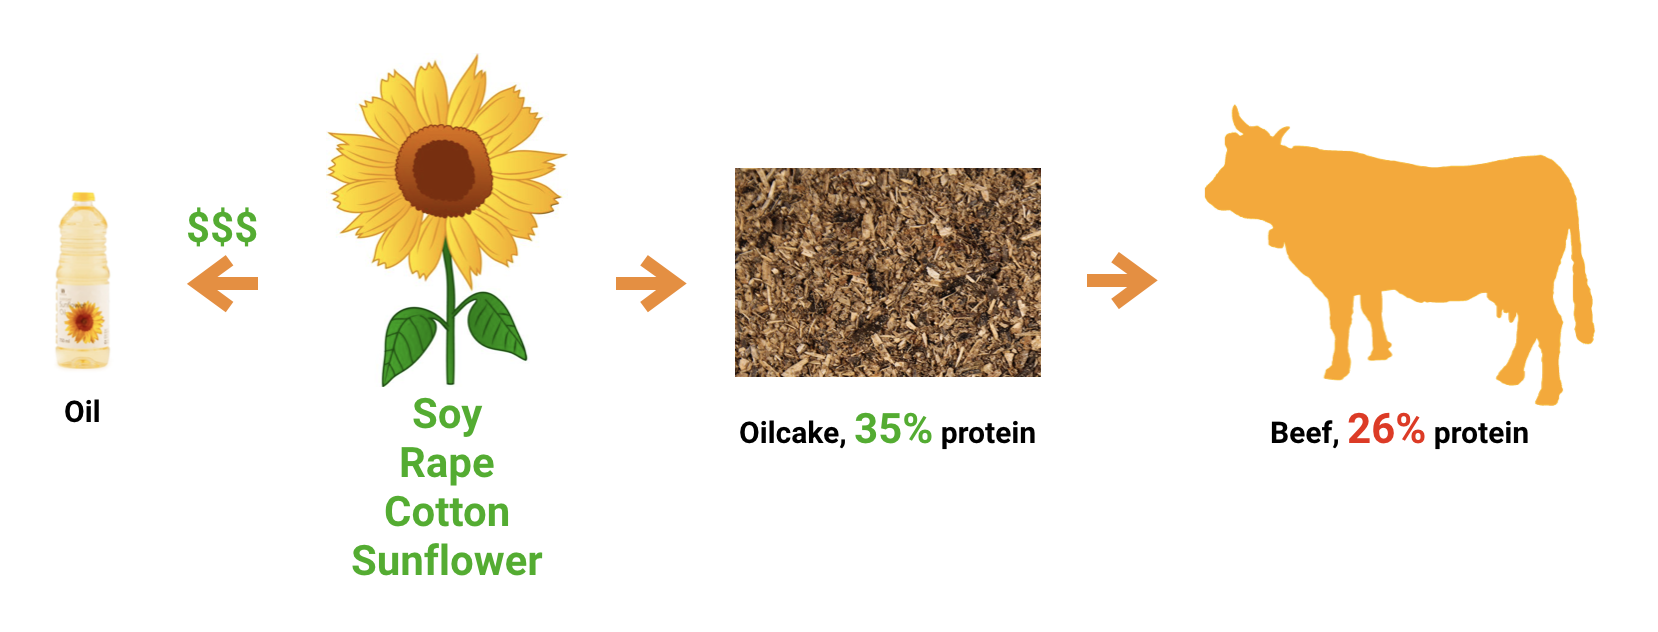 Sunflower oilcake to cattle.png